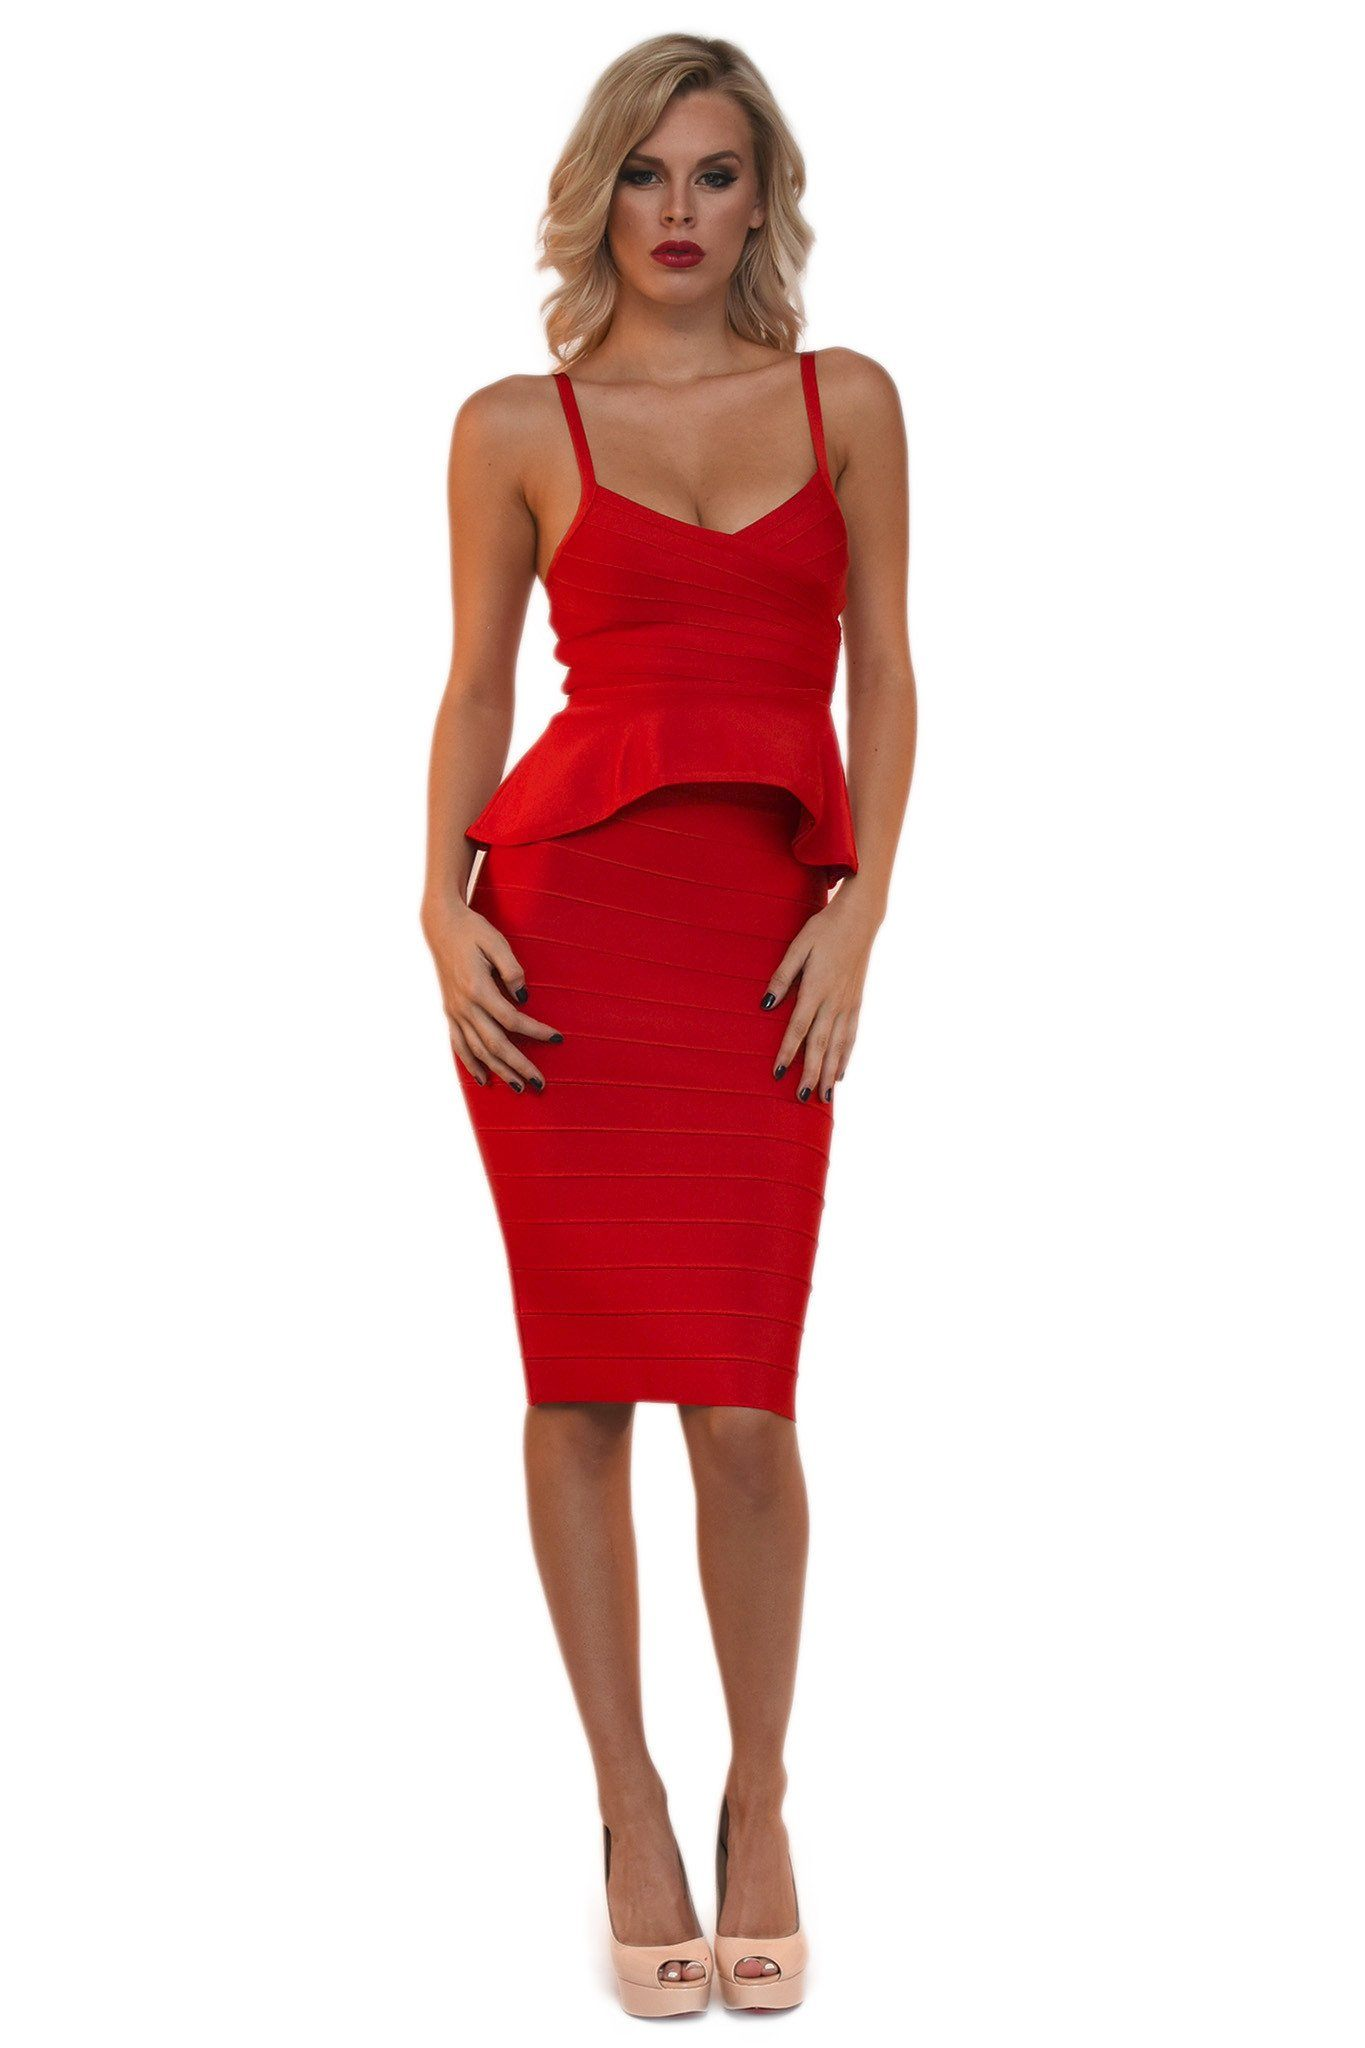 Red matching bandage set of sleeveless peplum top spaghetti straps and a midi pencil skirt